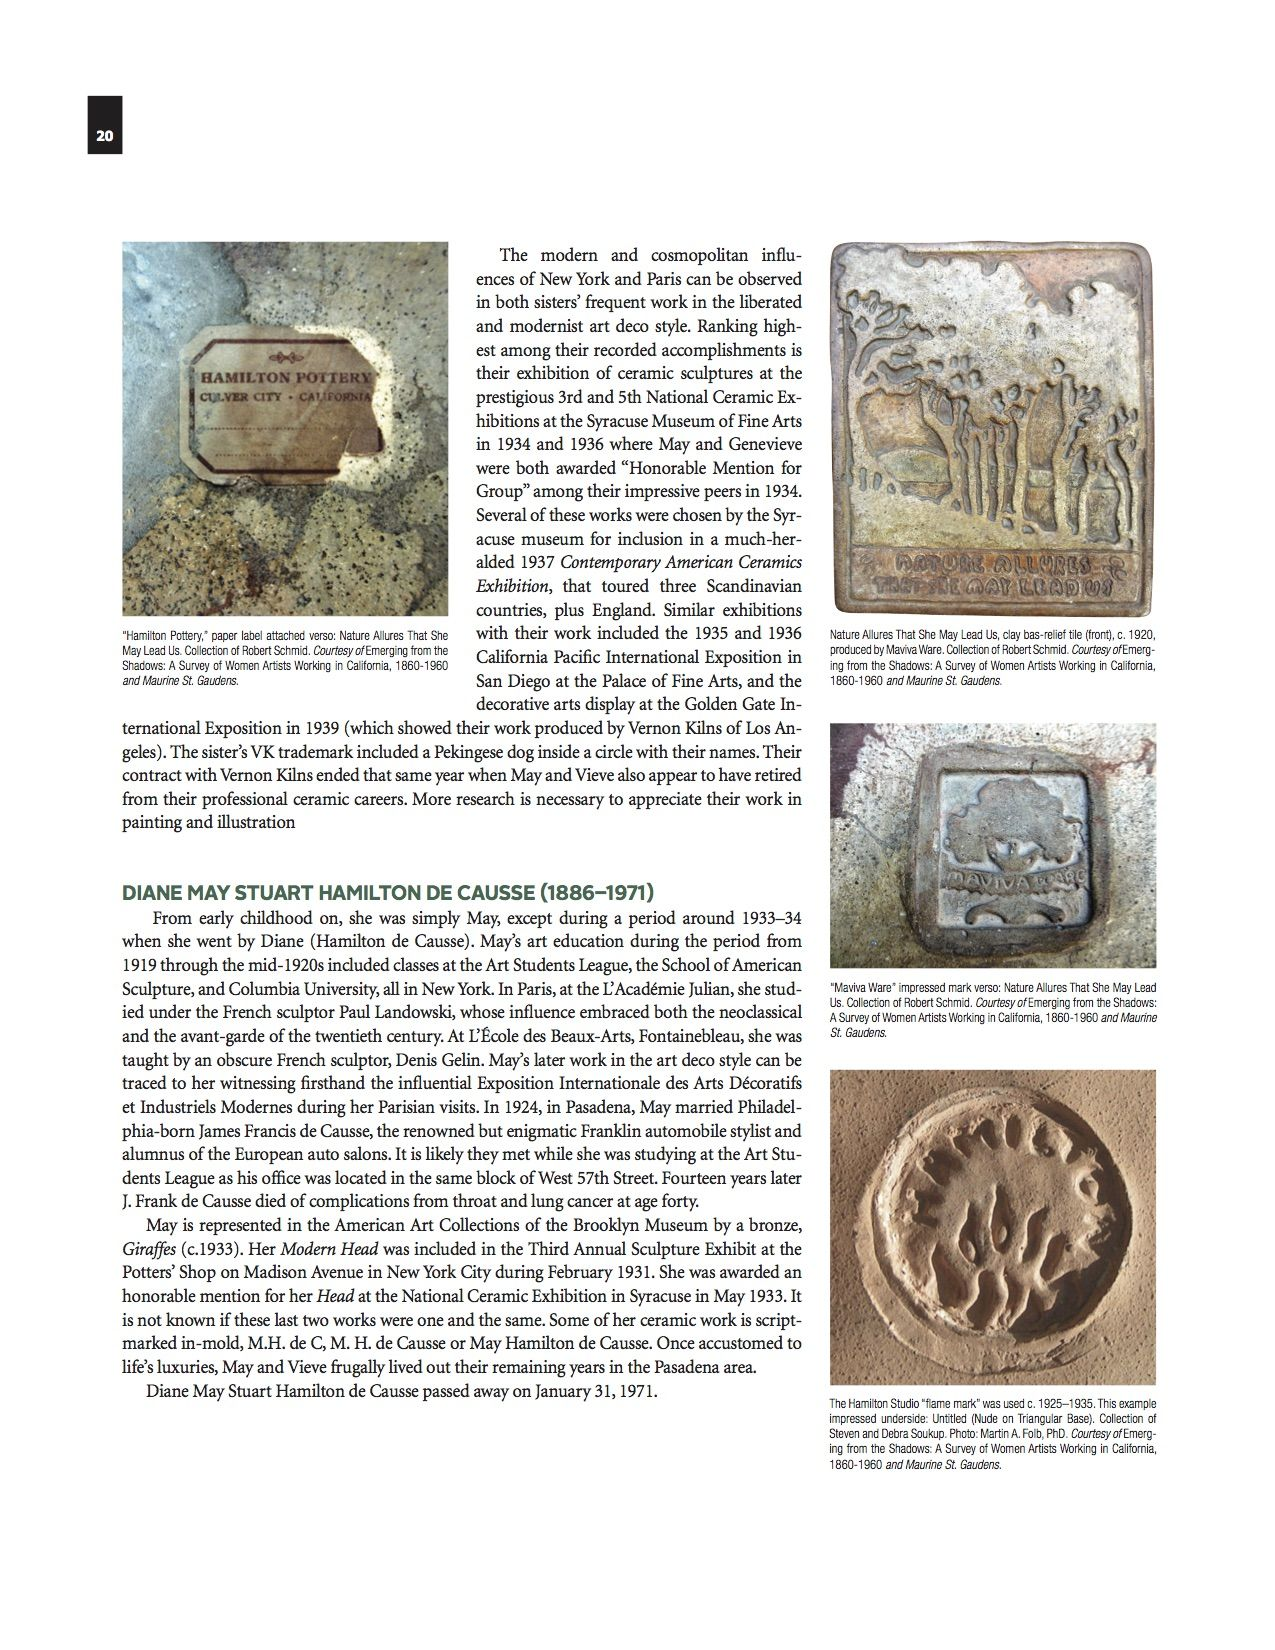 P.20 Journal of the American Art Pottery Association, Fall 2016, Vol.